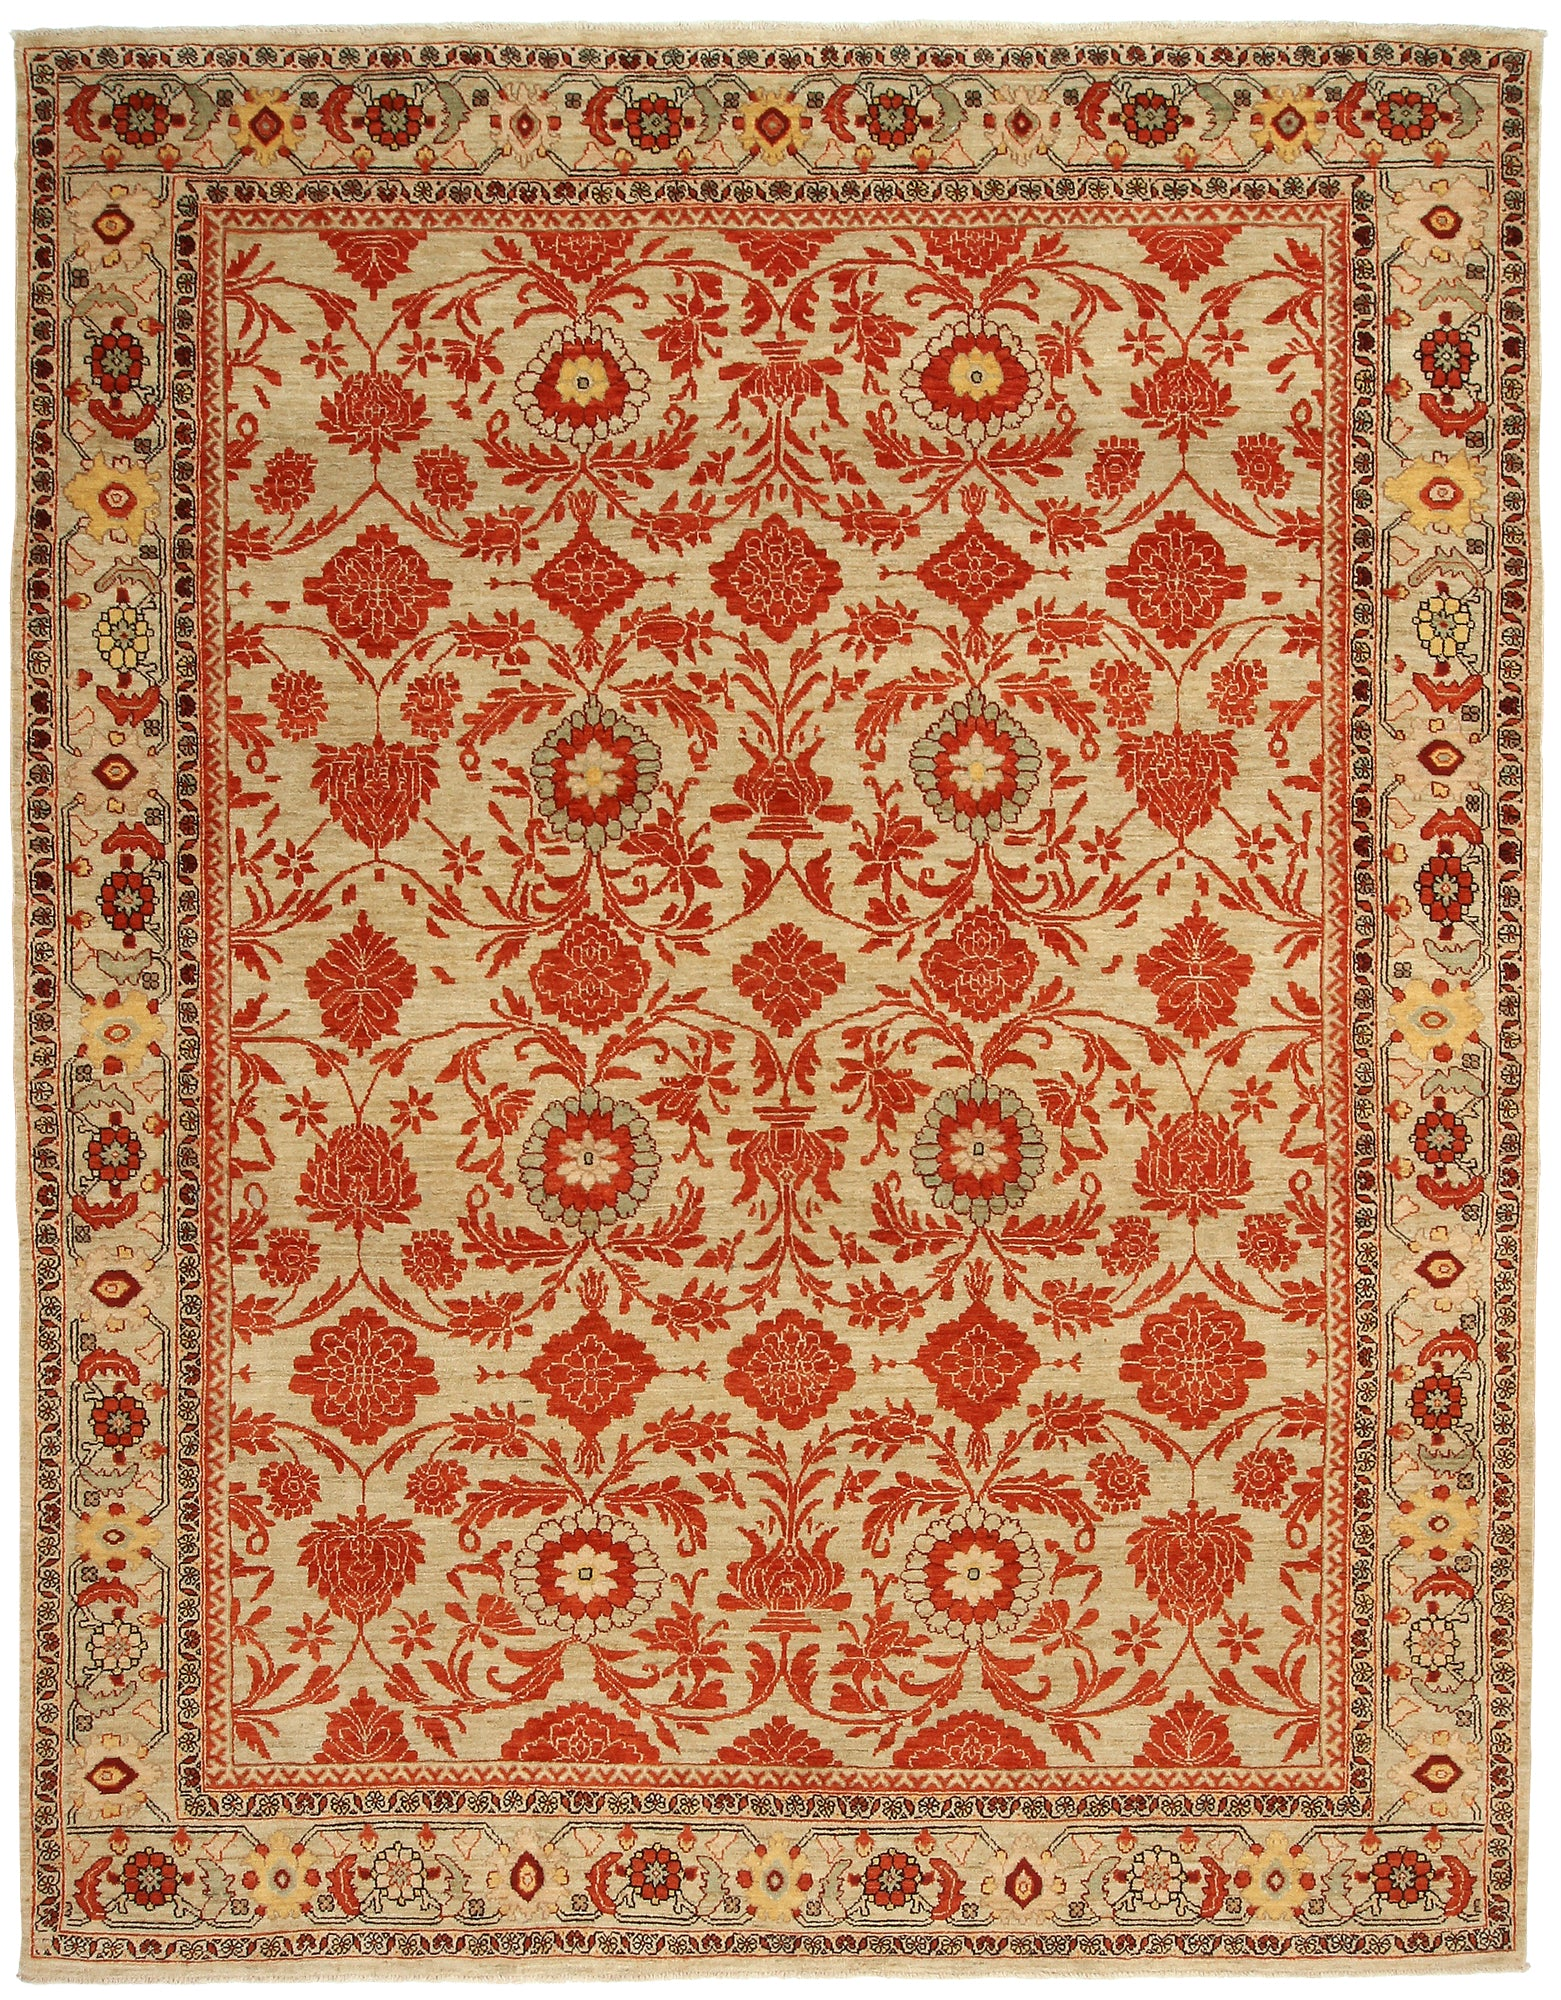 Malayer Rug-Turco Persian Rug Company Inc.